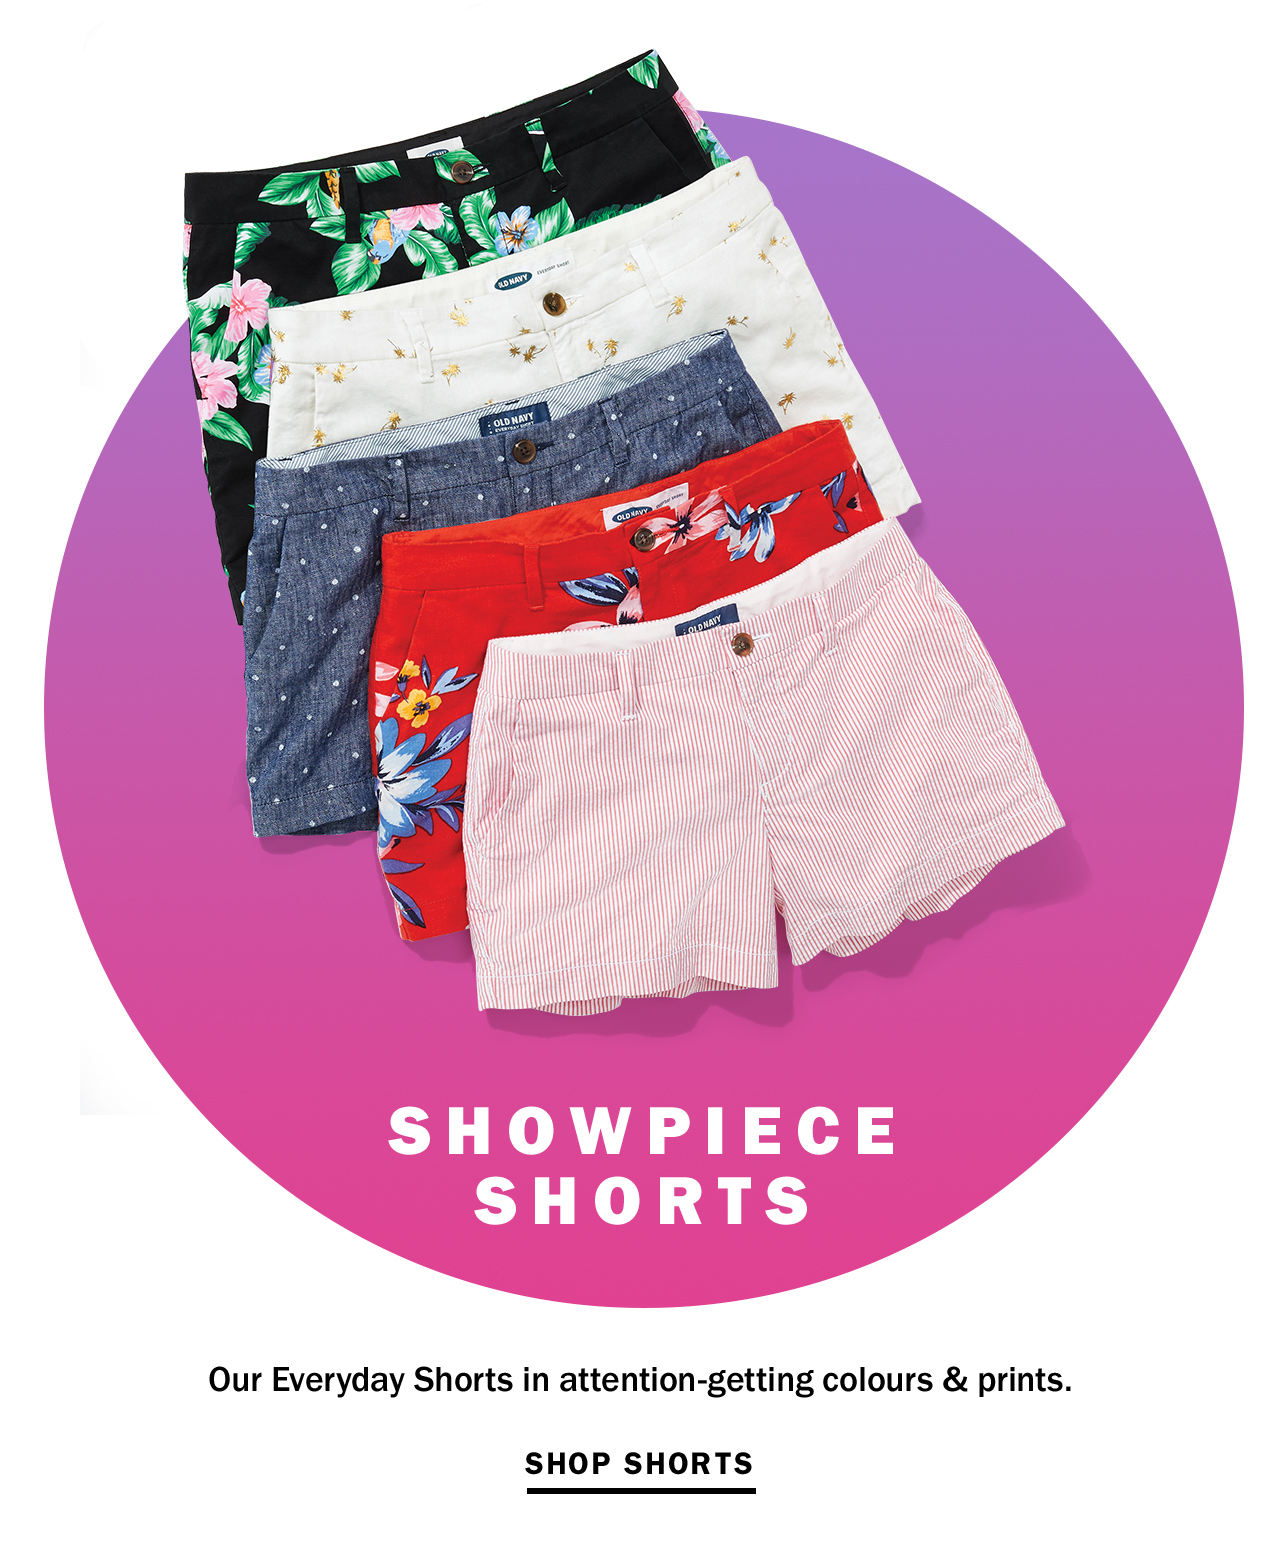 SHOWPIECE SHORTS | SHOP SHORTS